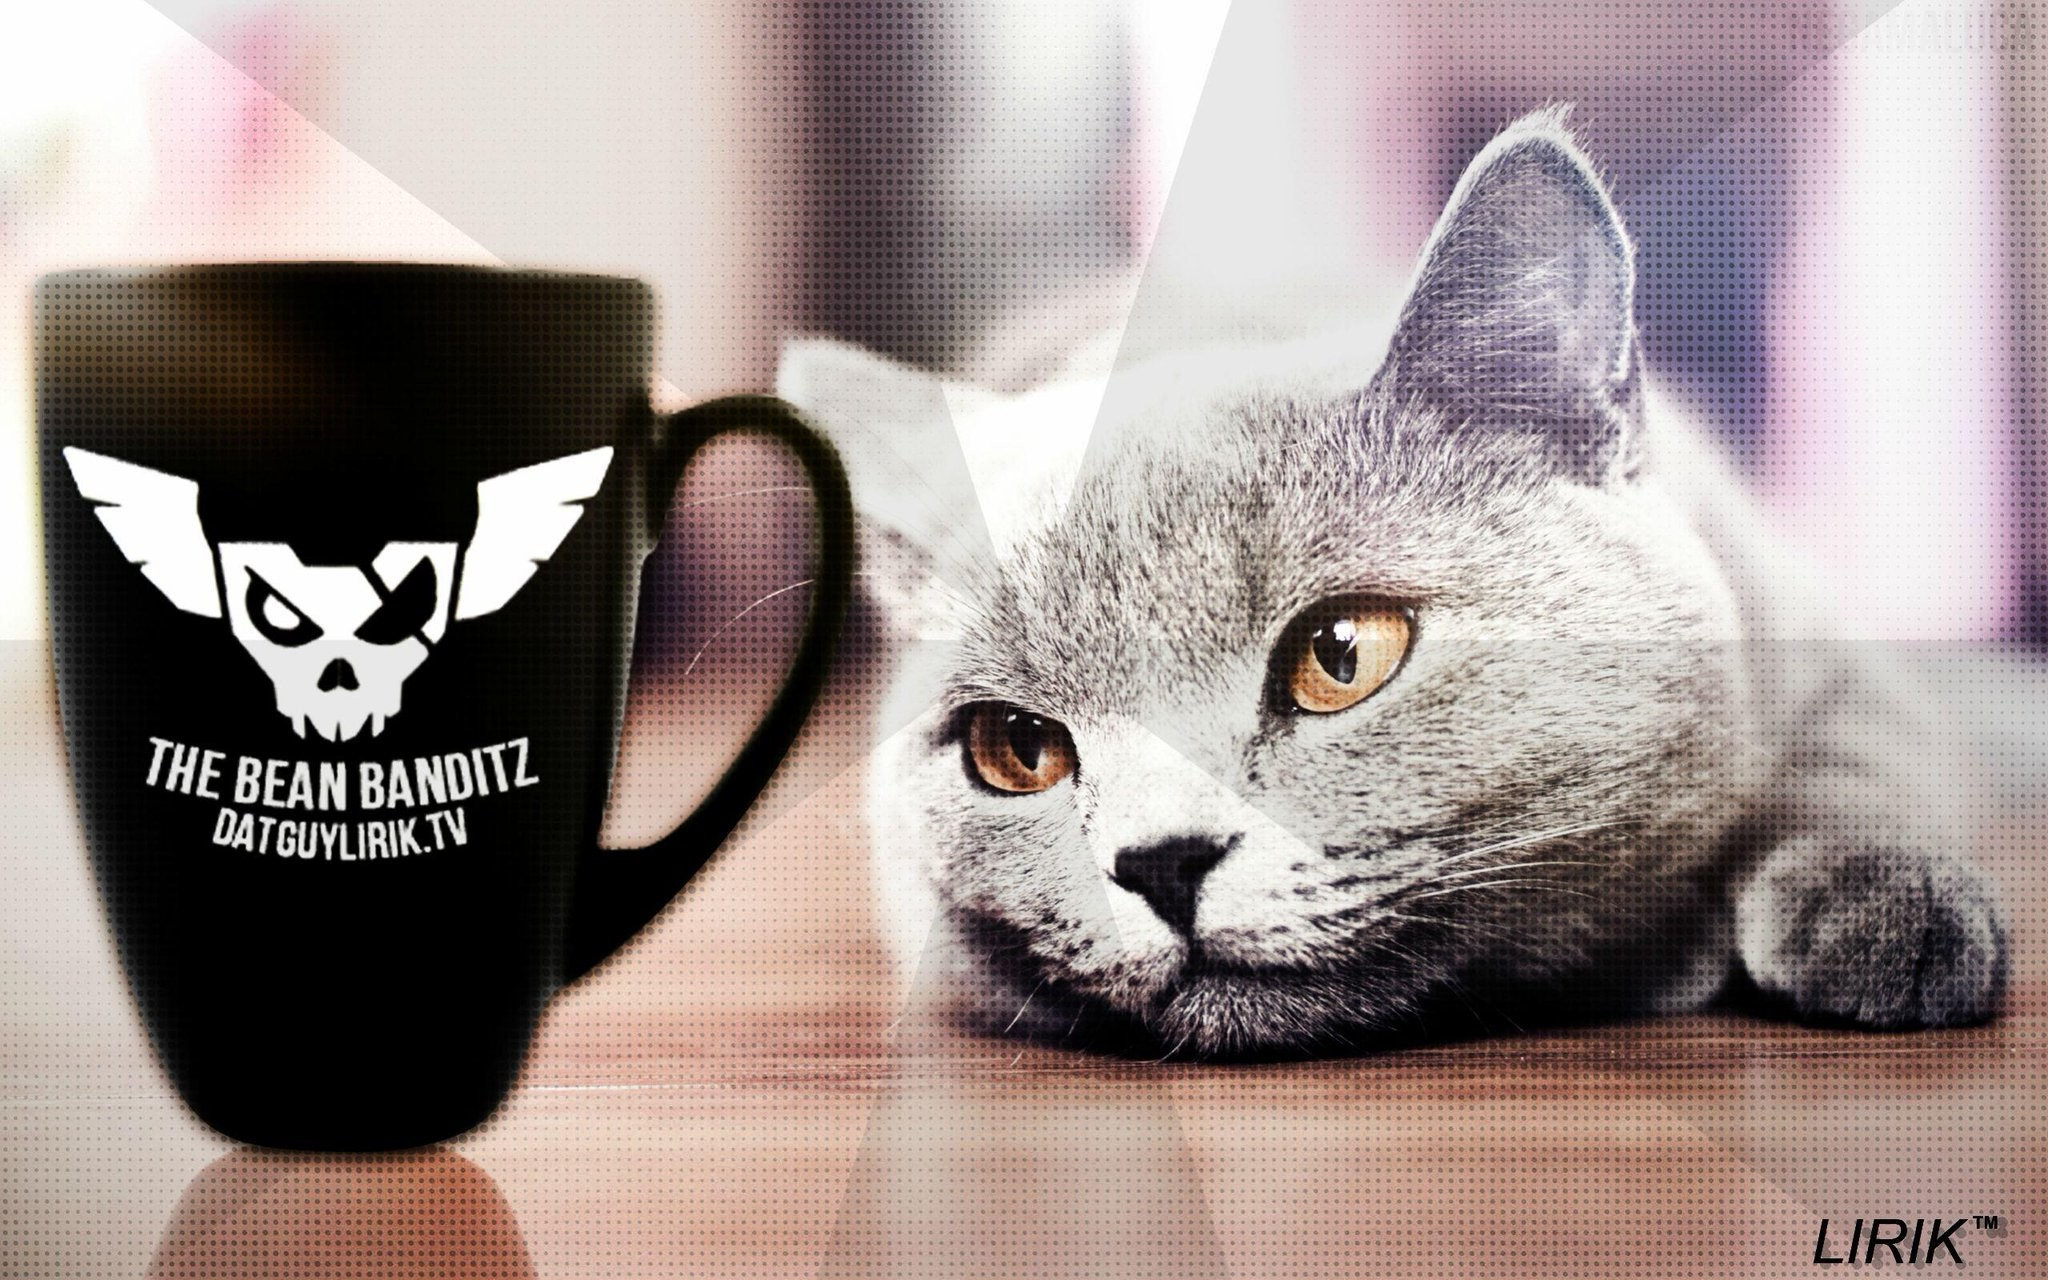 "Res: 2048x1280, Lirik on Twitter: ""I think this is the best coffee mug design. Simple and  to the point. Thoughts? http://t.co/vyQe8b2Hc3"""